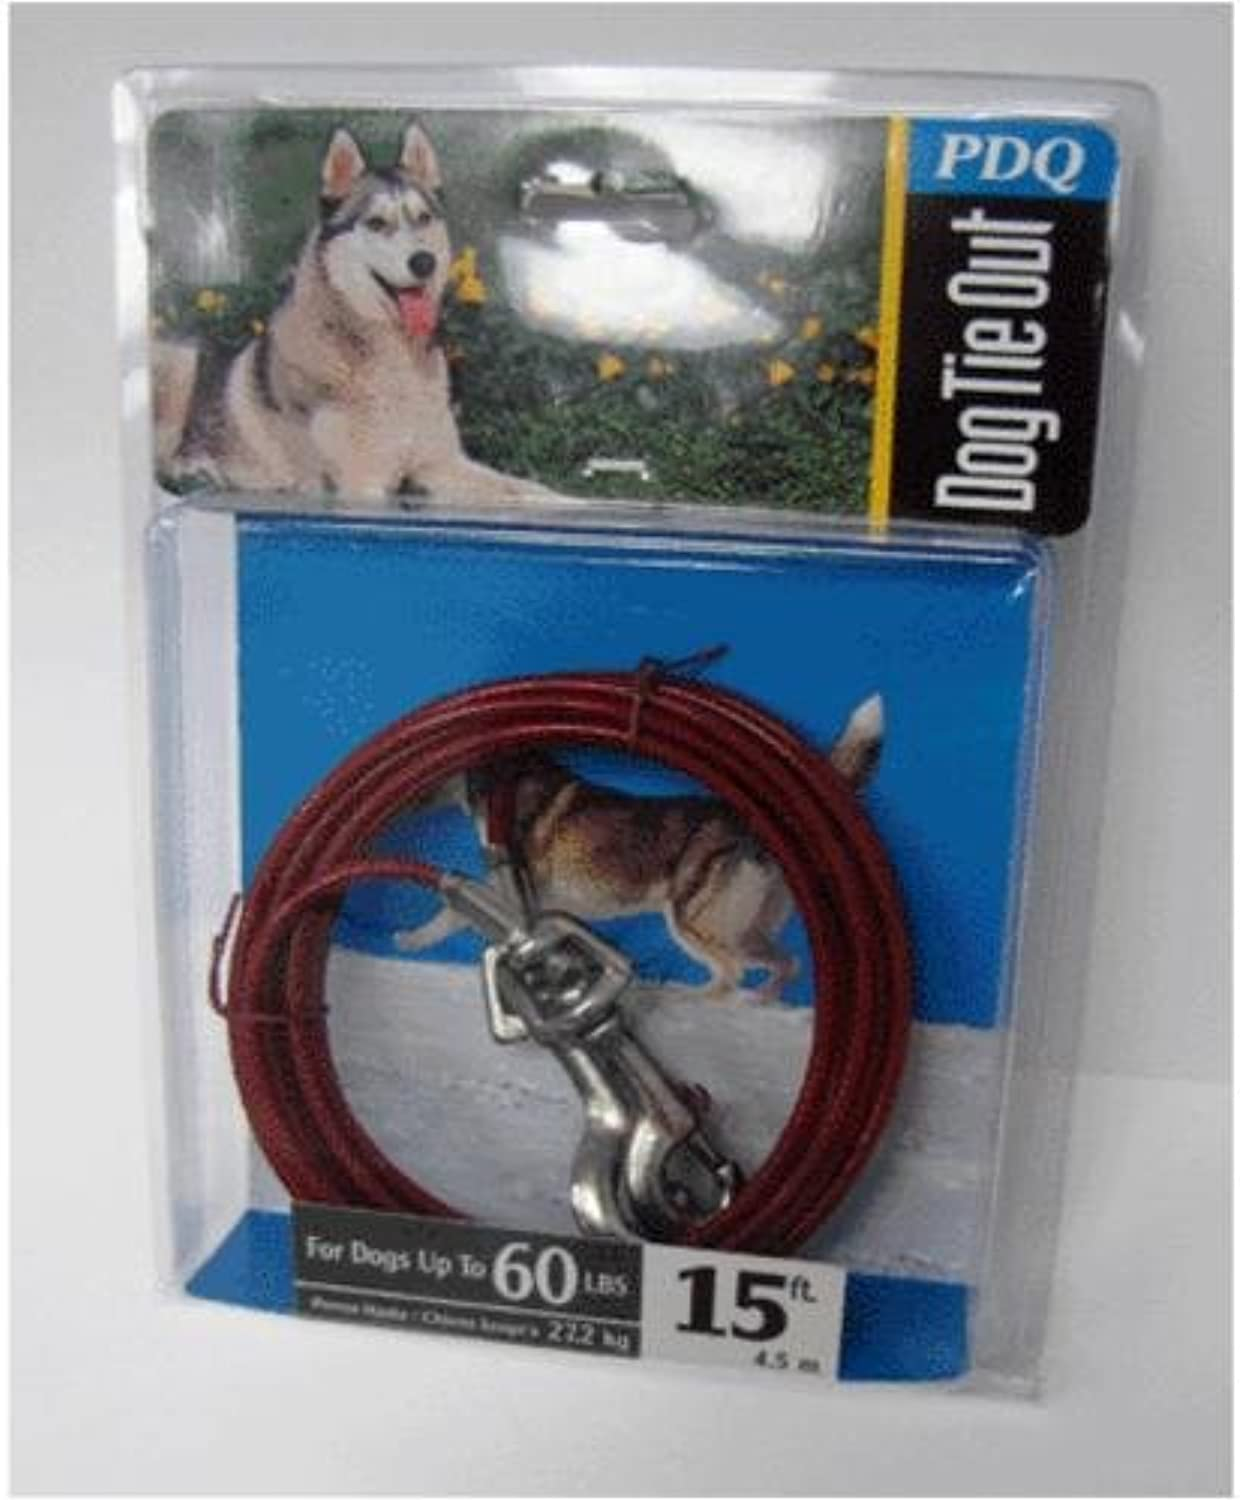 Q351500099 15' Pdq Large Dog TieOut by Boss Pet Products